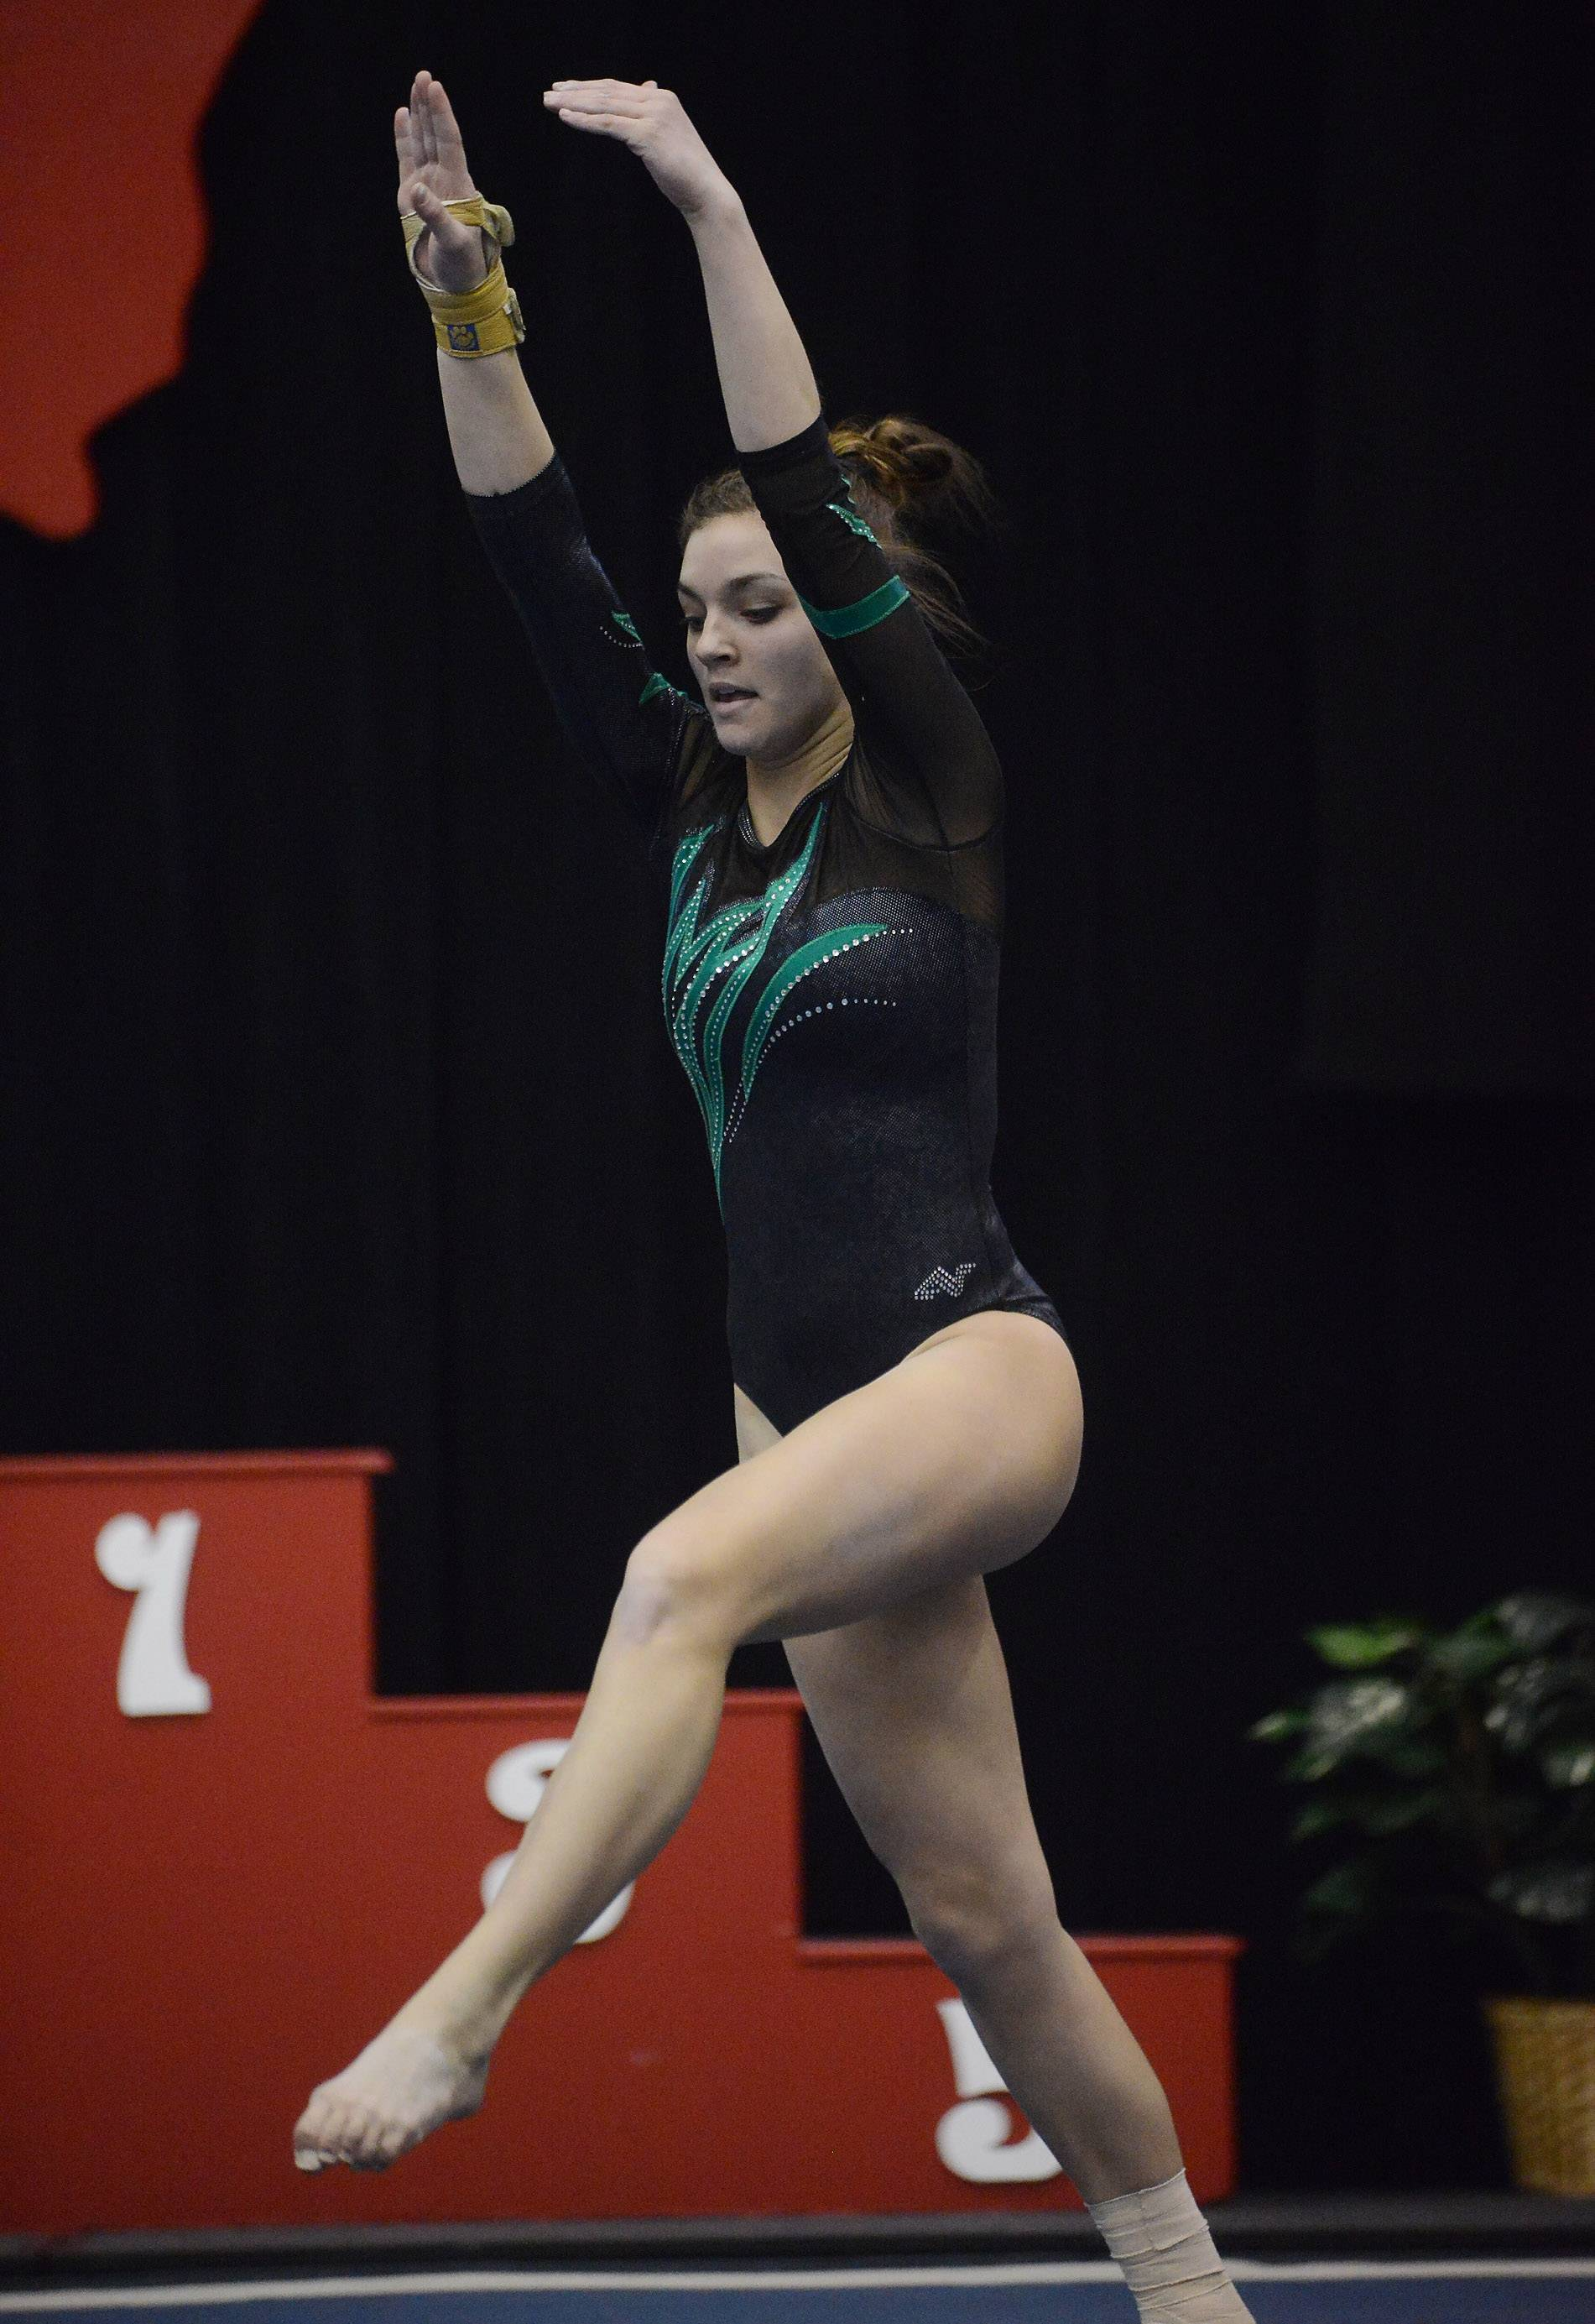 Bob Chwedyk/bchwedyk@dailyherald.comChristine Radochonski of Fremd on floor exercise during the girls gymnastics state final at Palatine on Saturday.